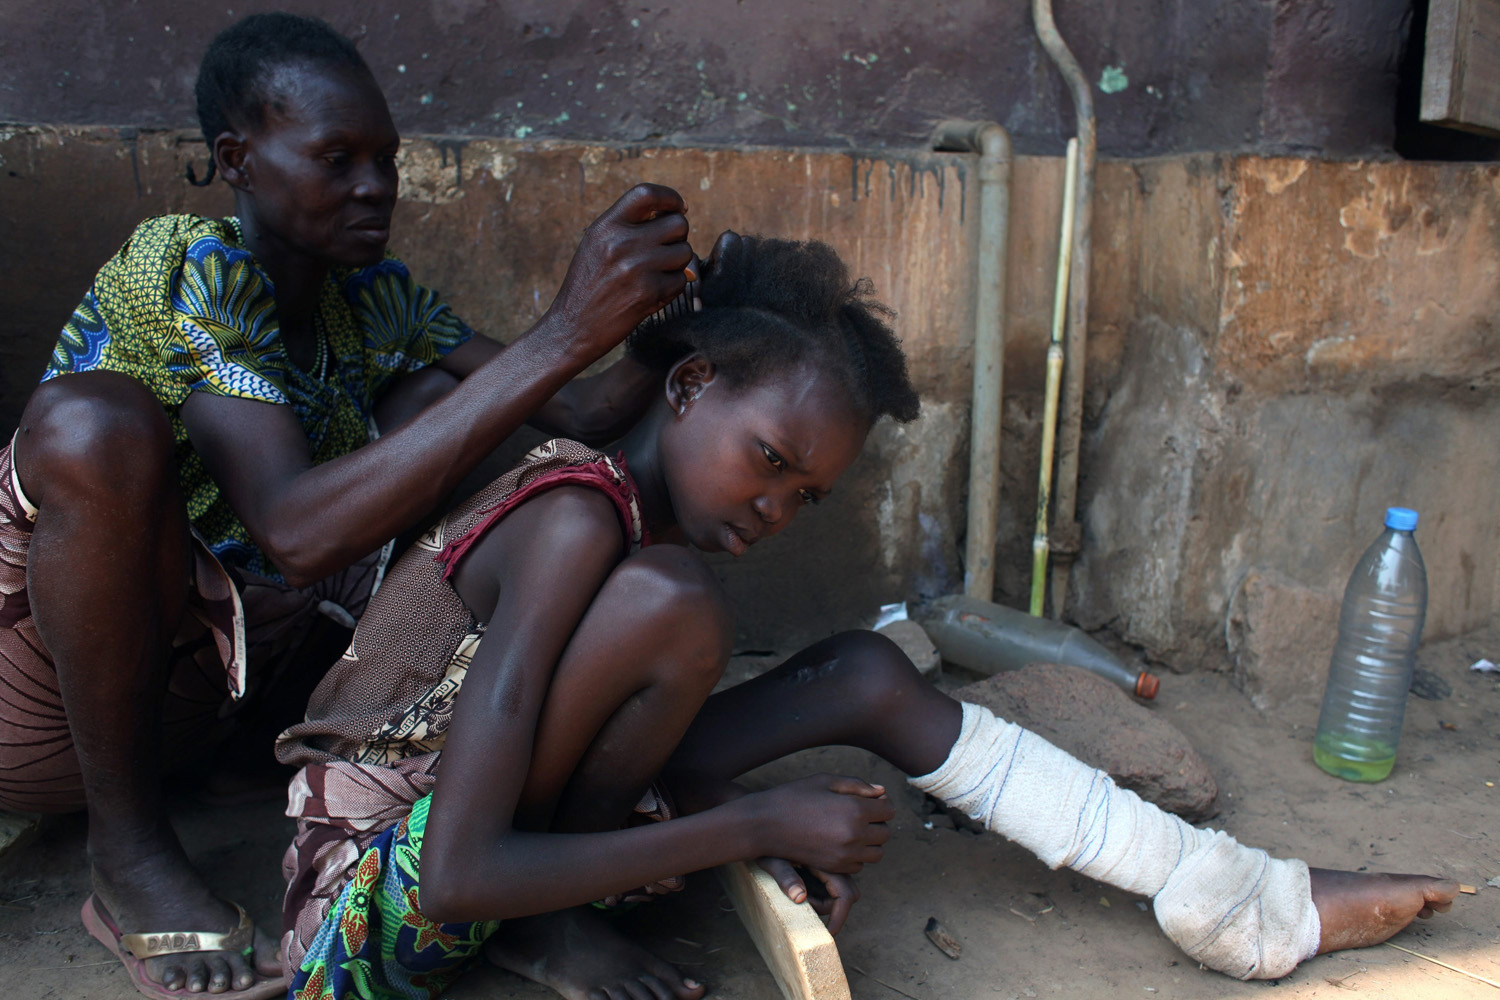 Jan. 1, 2014. A woman, displaced as a result of religious violence, plaits the hair of her daughter who is nursing an injury at a hospital in Bossangao, Central African Republic.